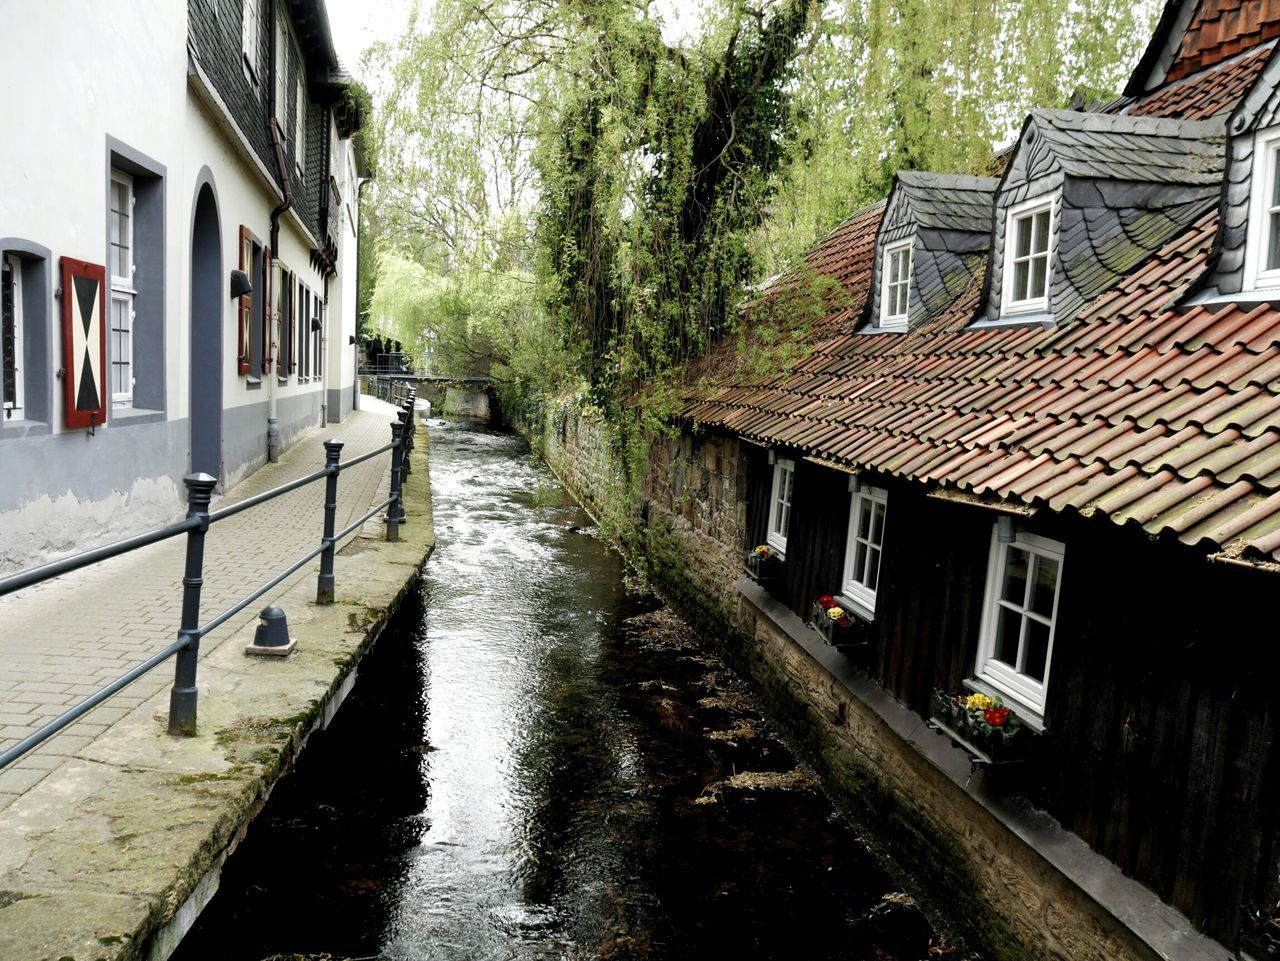 Architecture No People House Goslar Water Germany Architecture